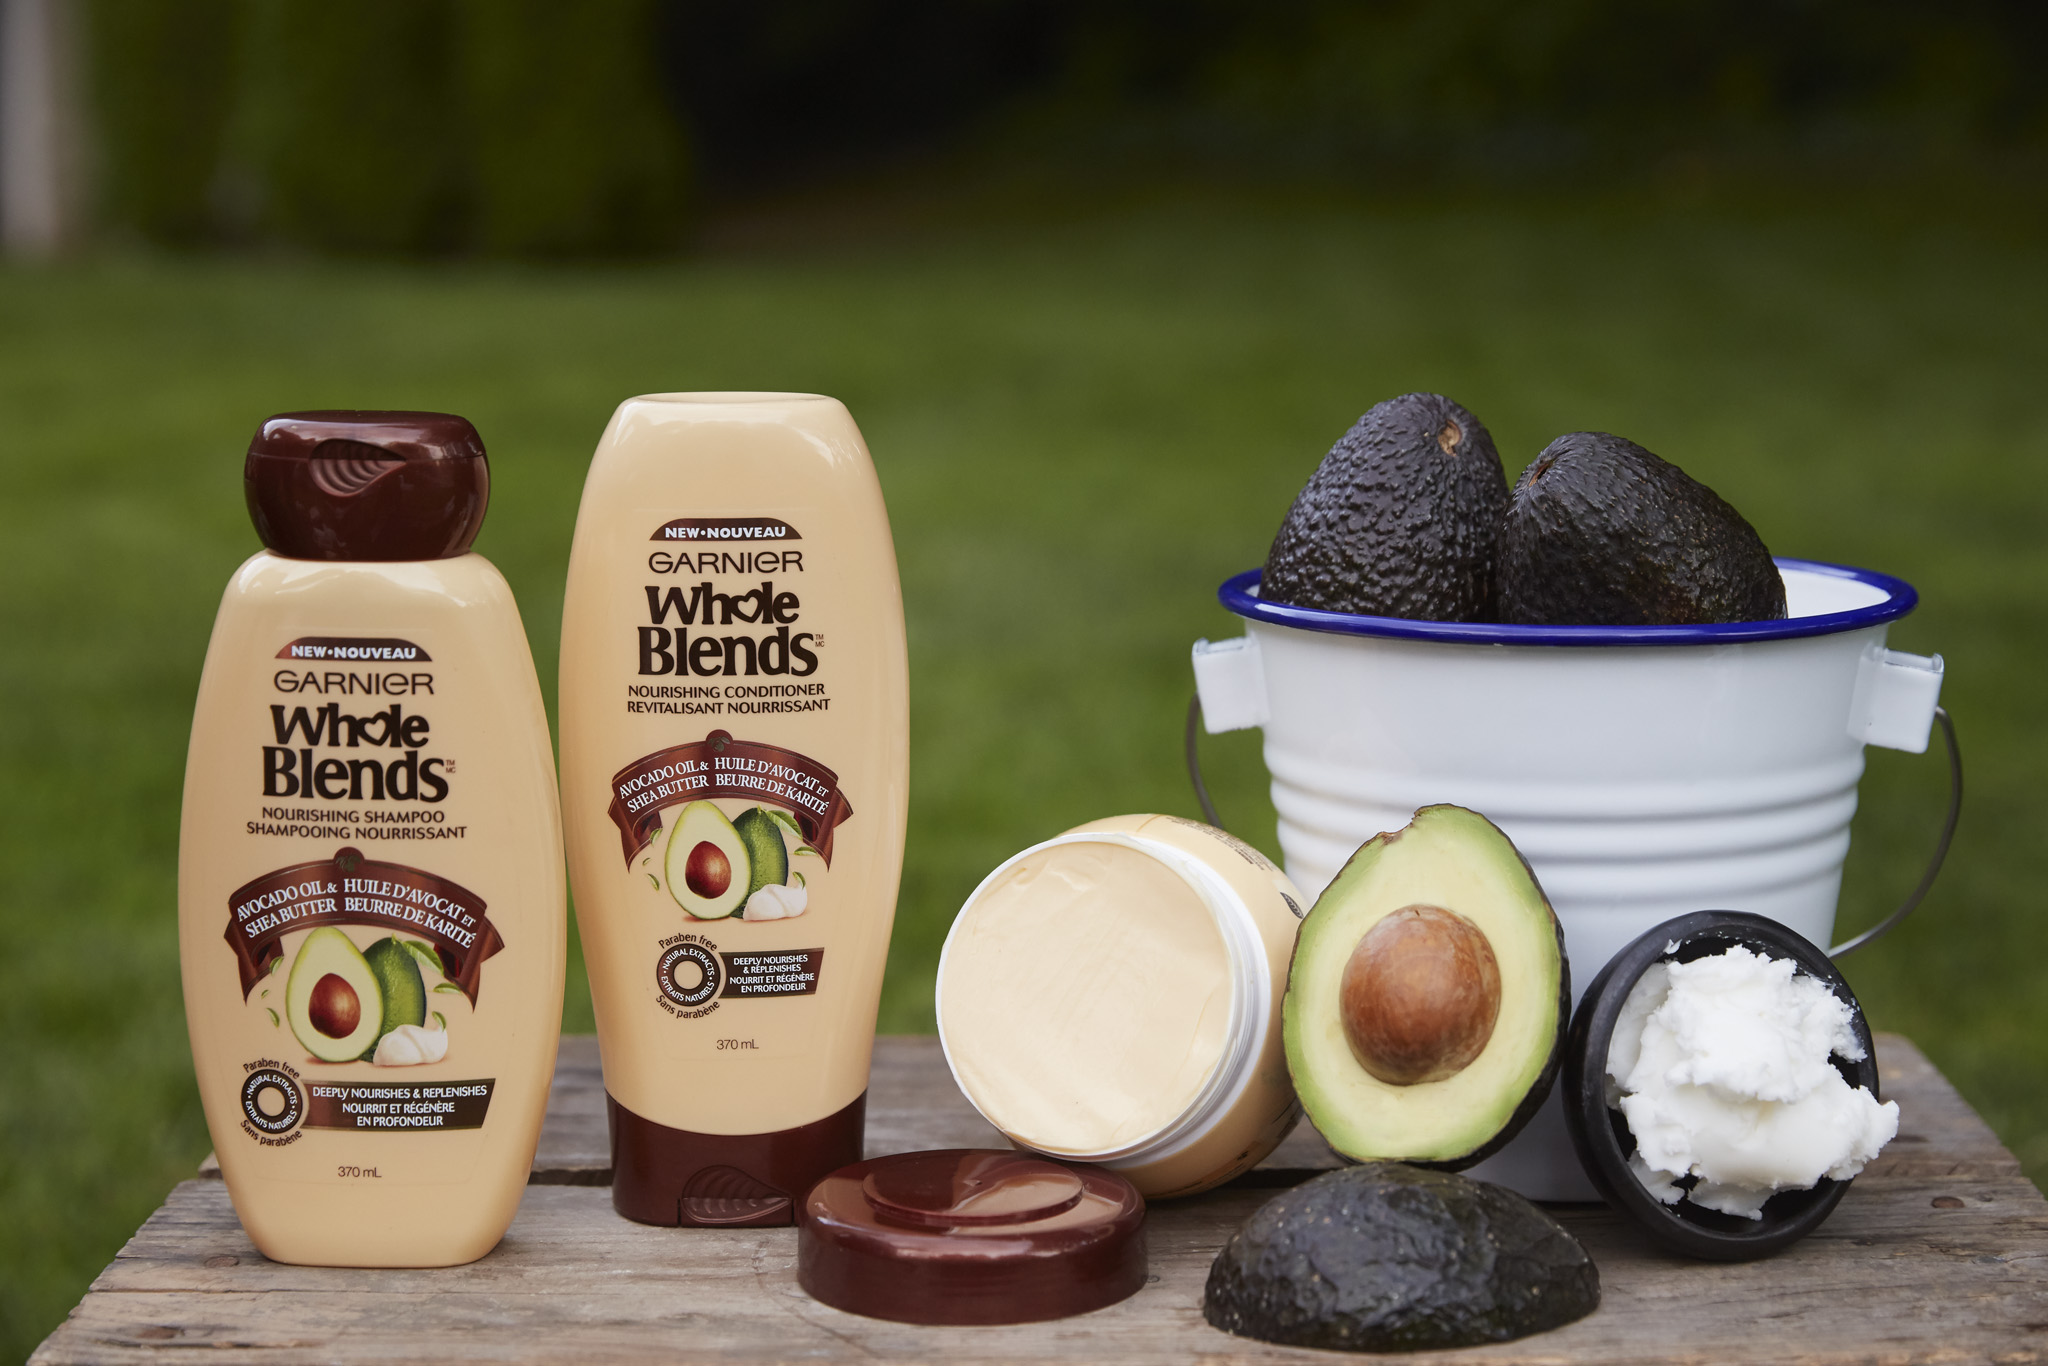 Product Advertising for Garnier Whole Blends